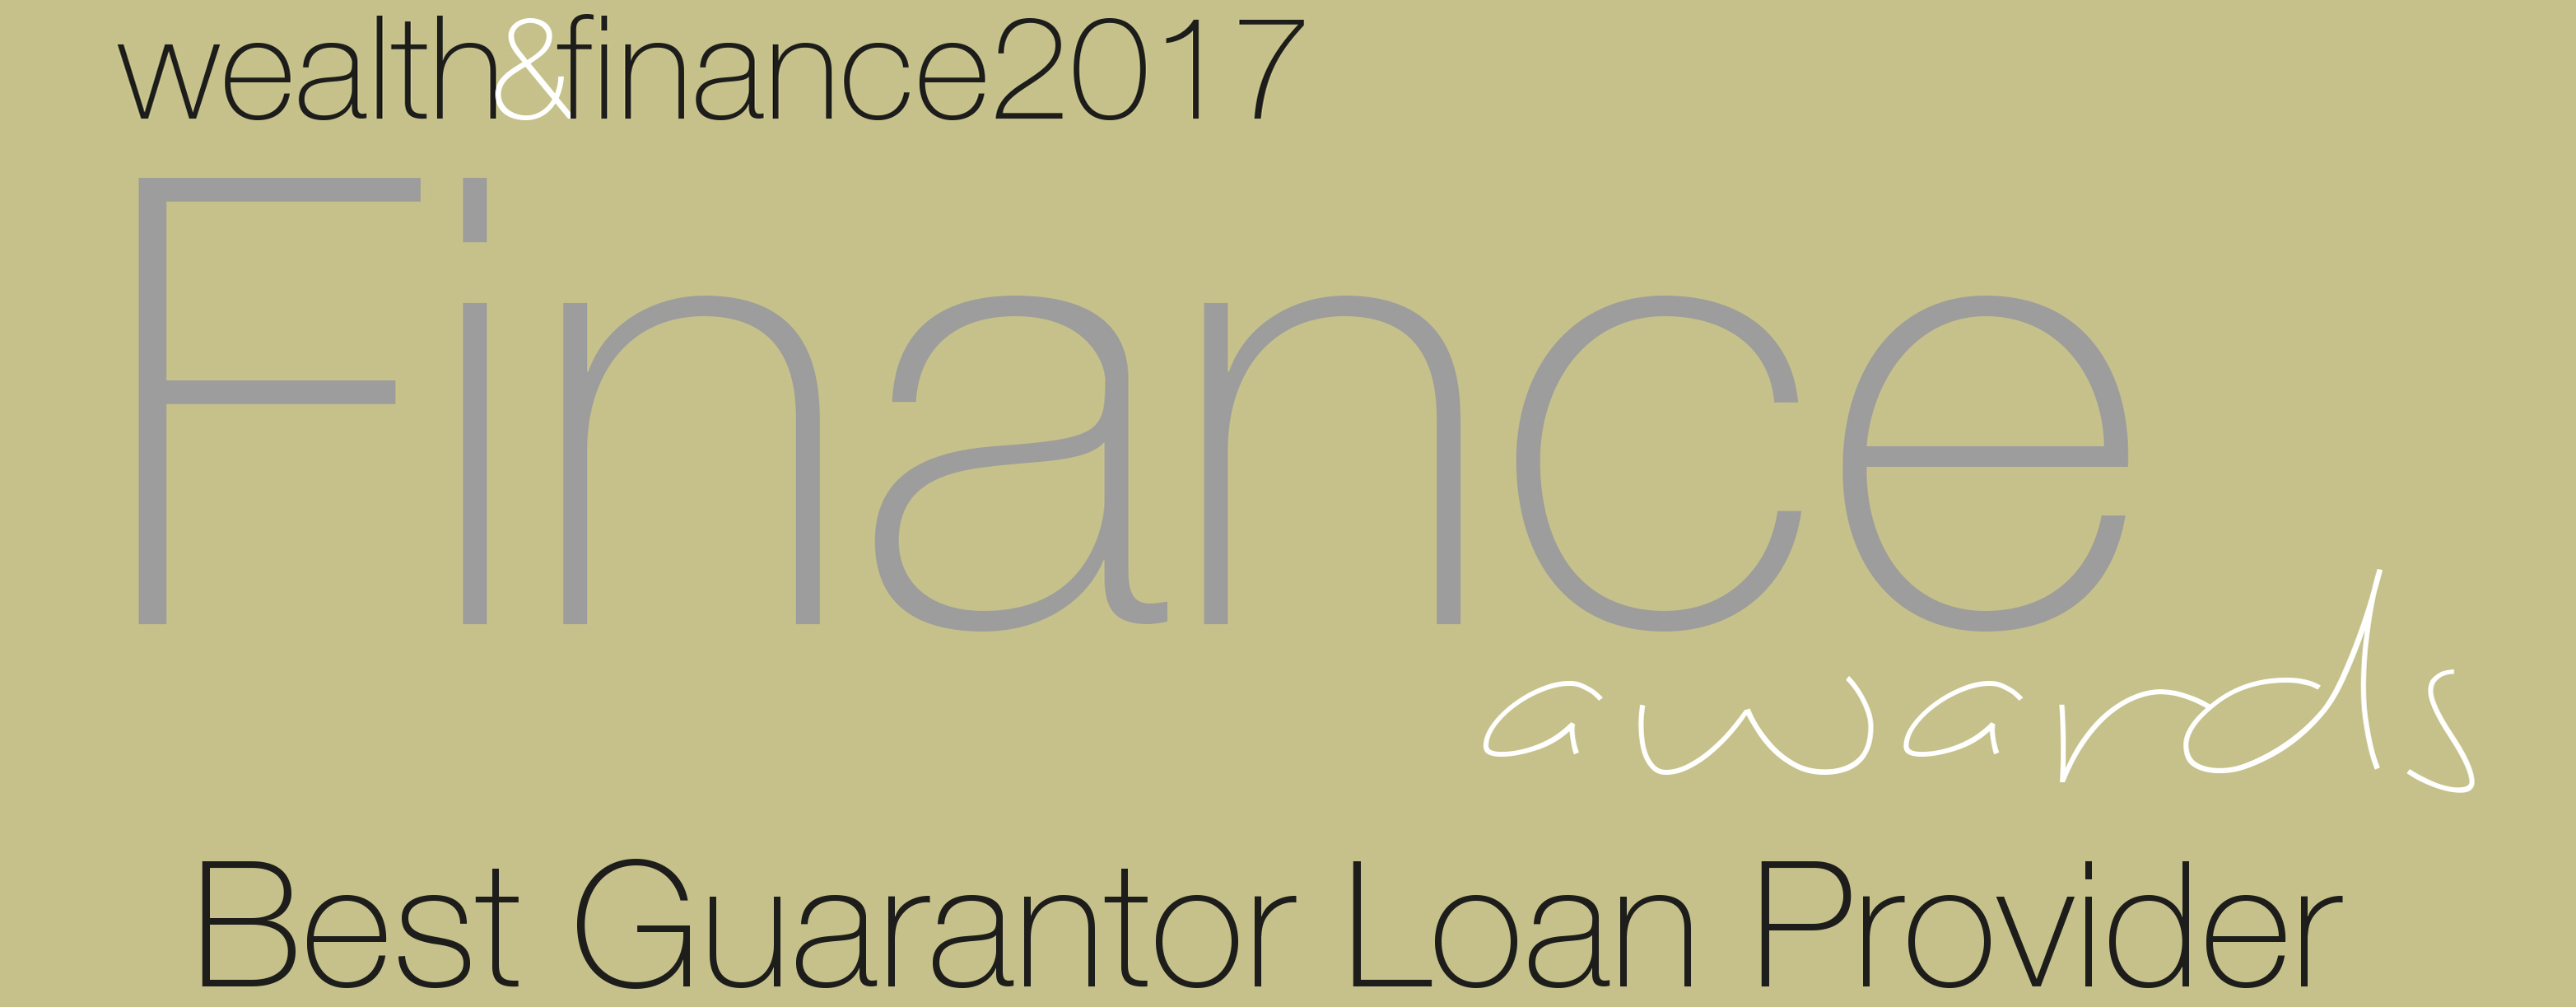 wealth and finance 2017 Finance Awards - Best Guarantor Loan Provider